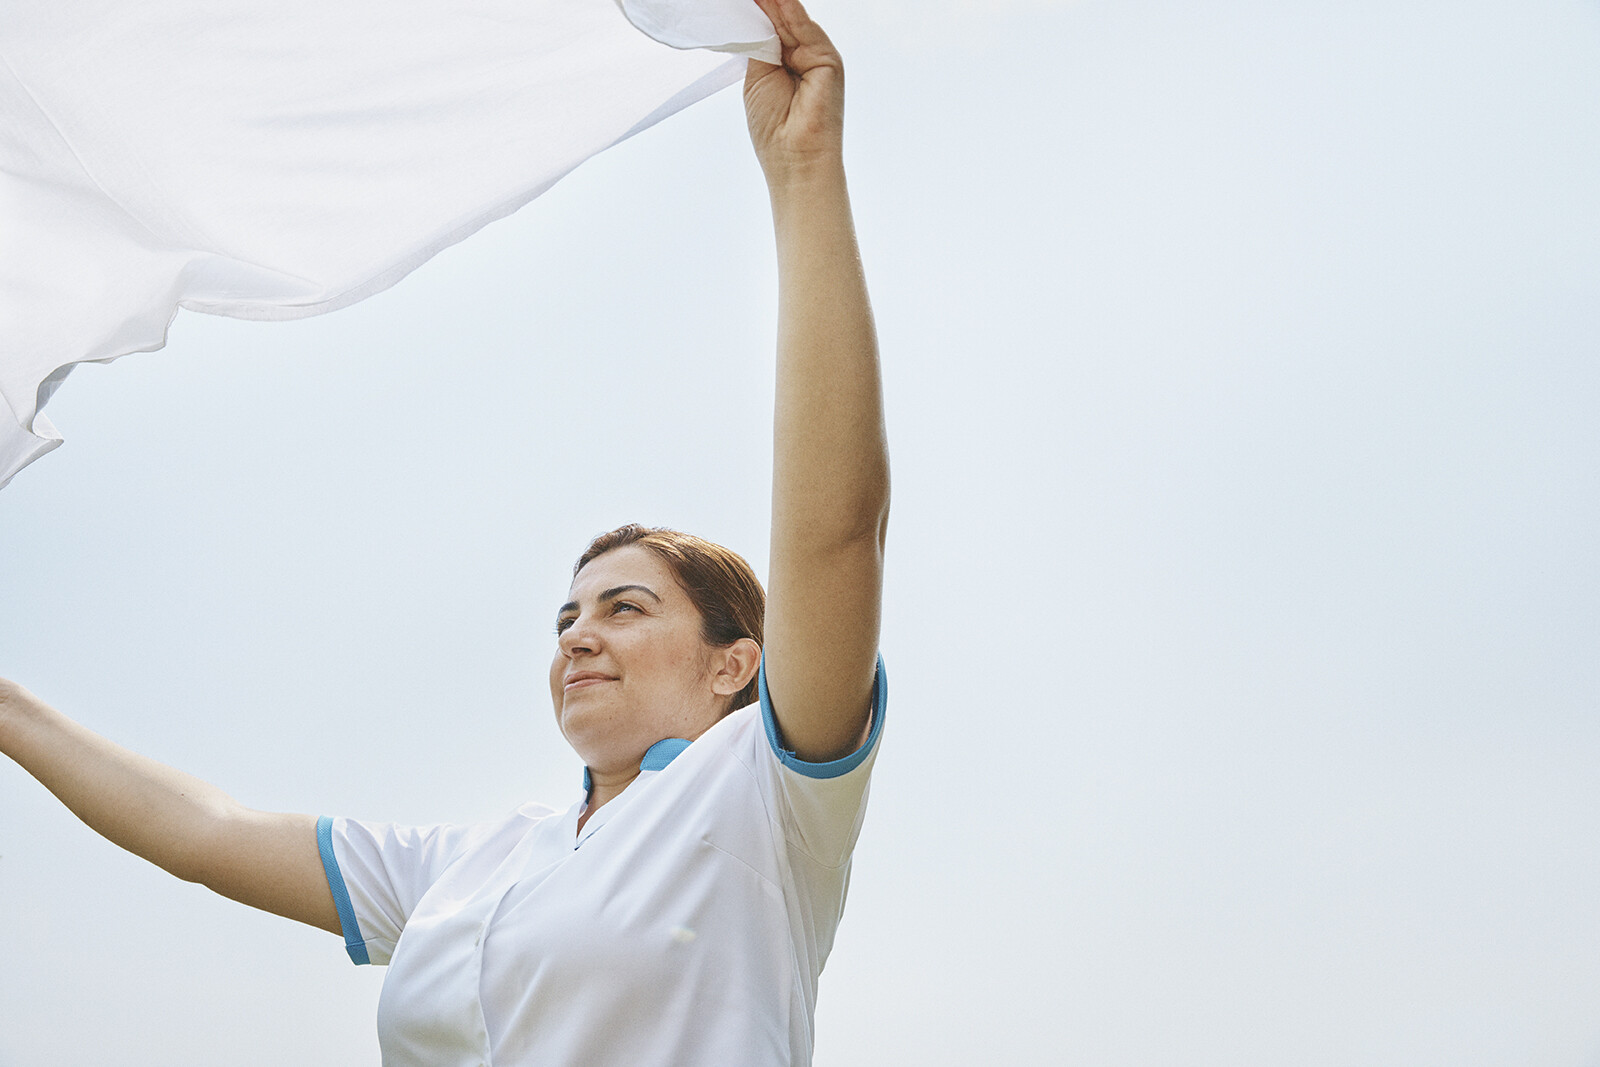 Tui For You Tui Blue Turkey Sarigerme _Staff _Cleaning Lady 03 Cleaning Lady 062